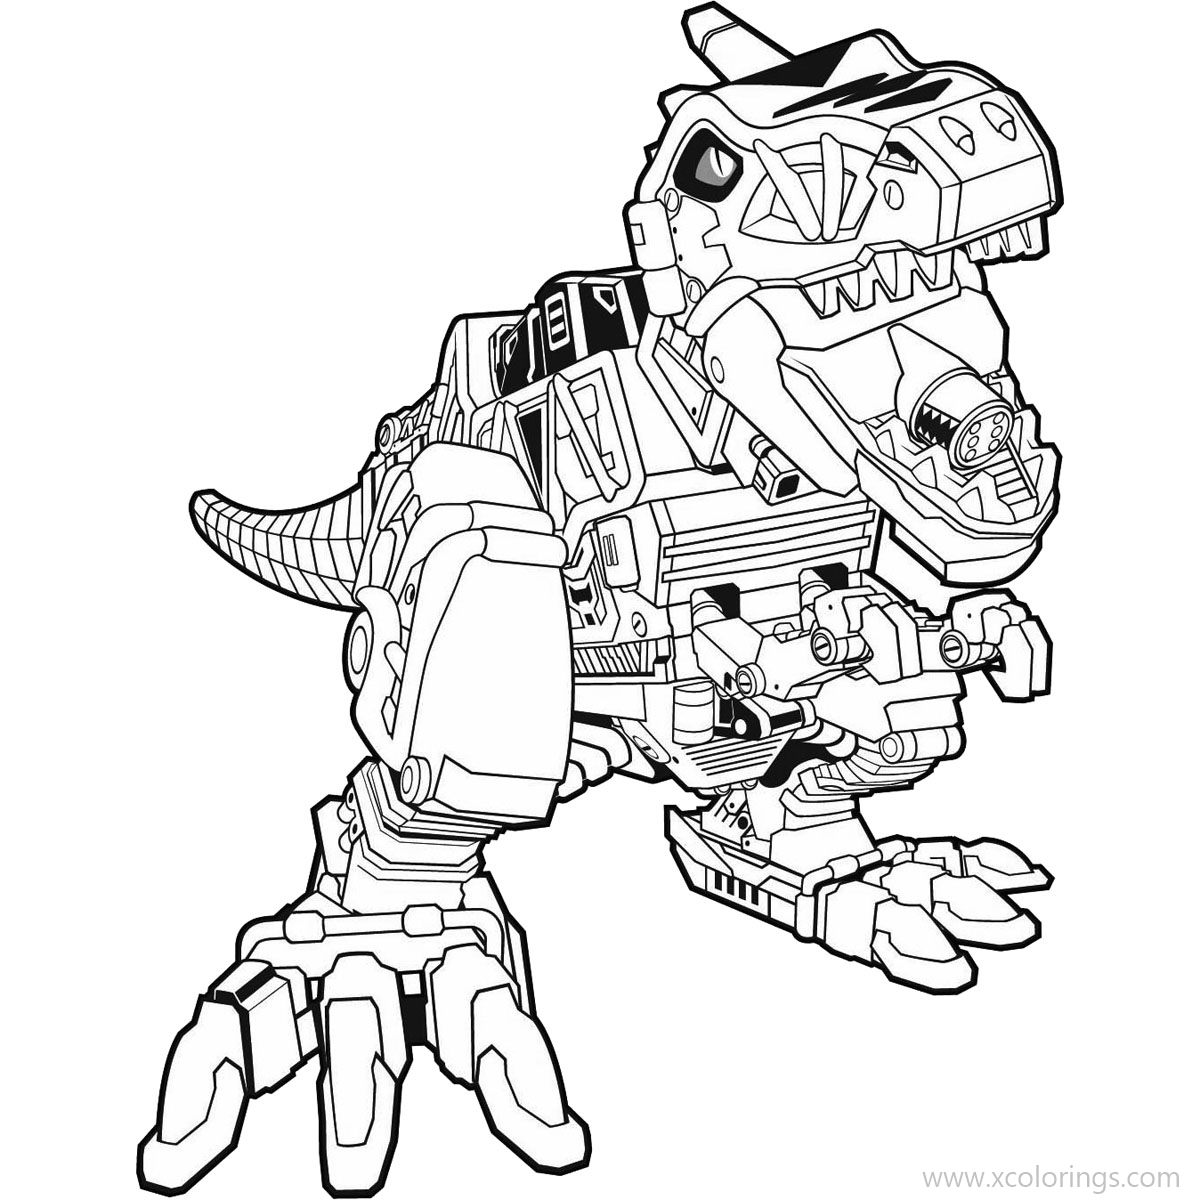 View 18 Power Rangers Dino Charge Zord Coloring Pages